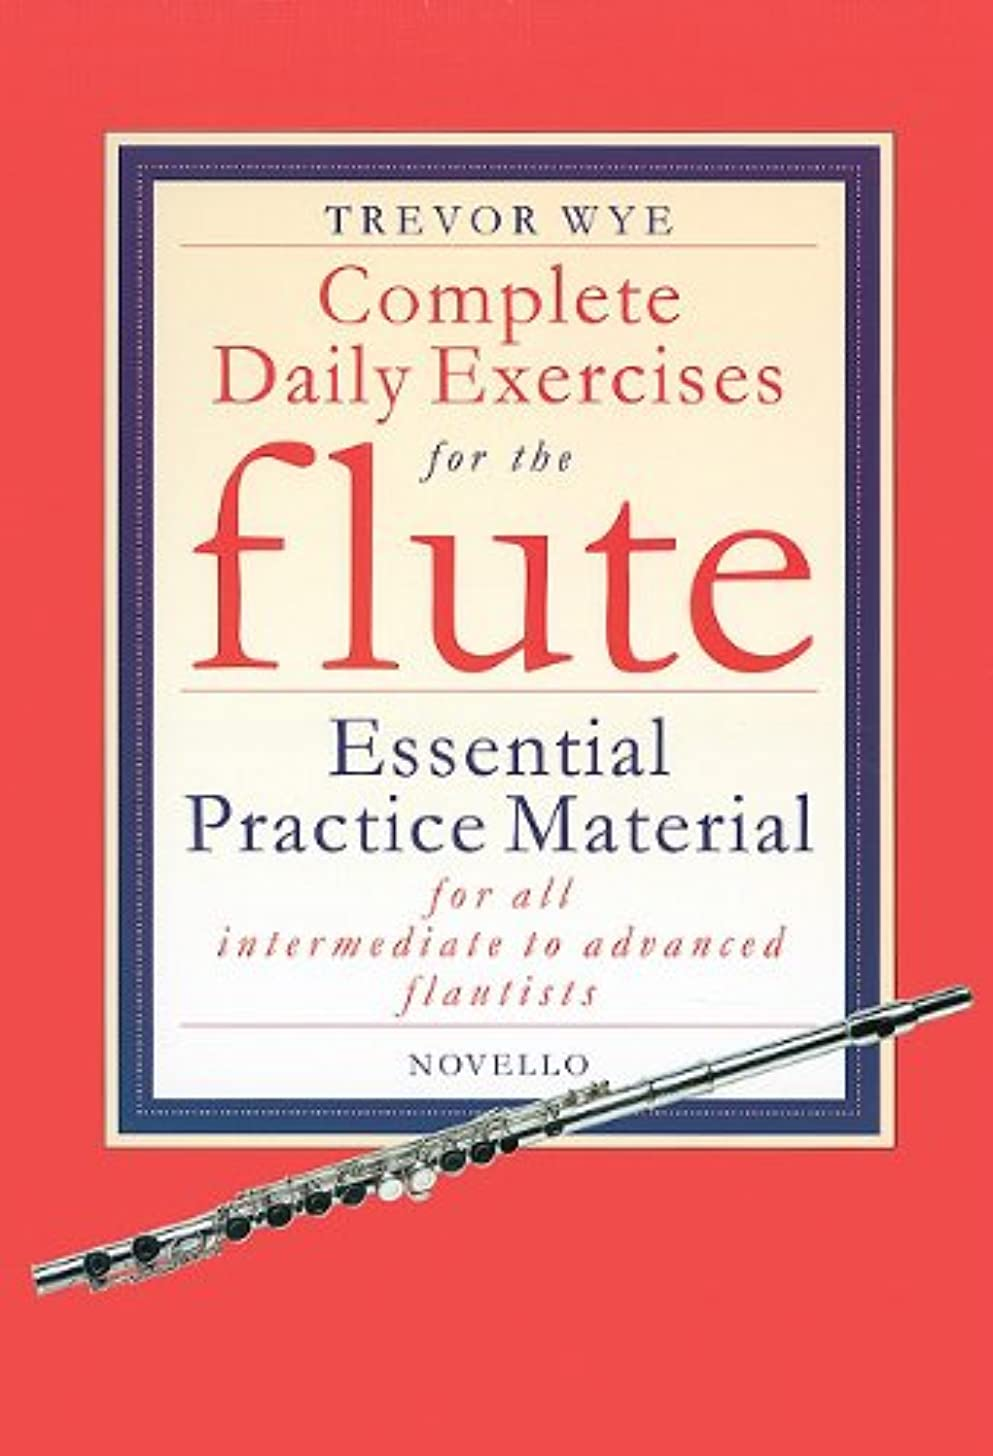 Complete Daily Exercises for the Flute - Flute Tutor: Essential Practice Material for All Intermediate to Advanced Flautists